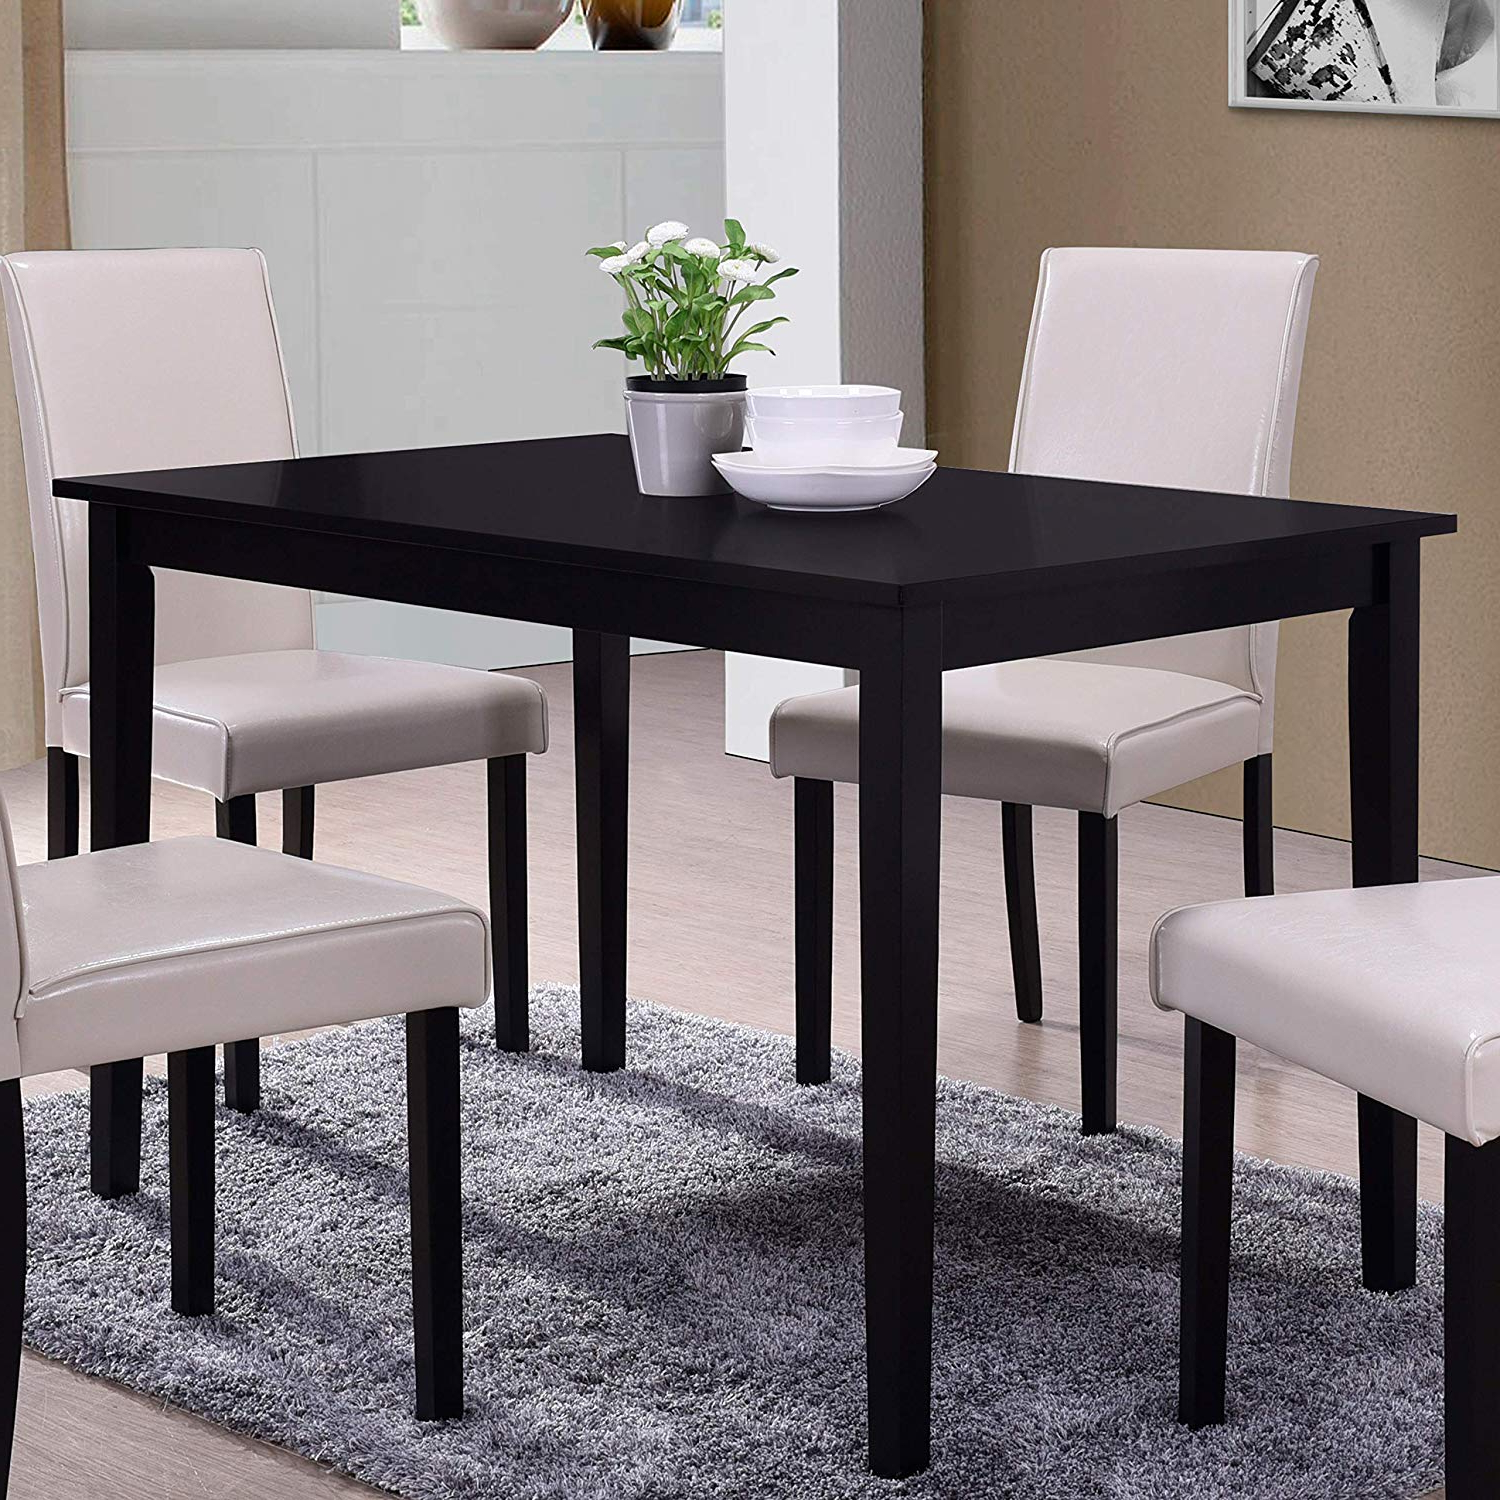 Widely Used Amazon – Best Master Furniture Melissa Transitional Regarding Transitional Rectangular Dining Tables (View 14 of 21)